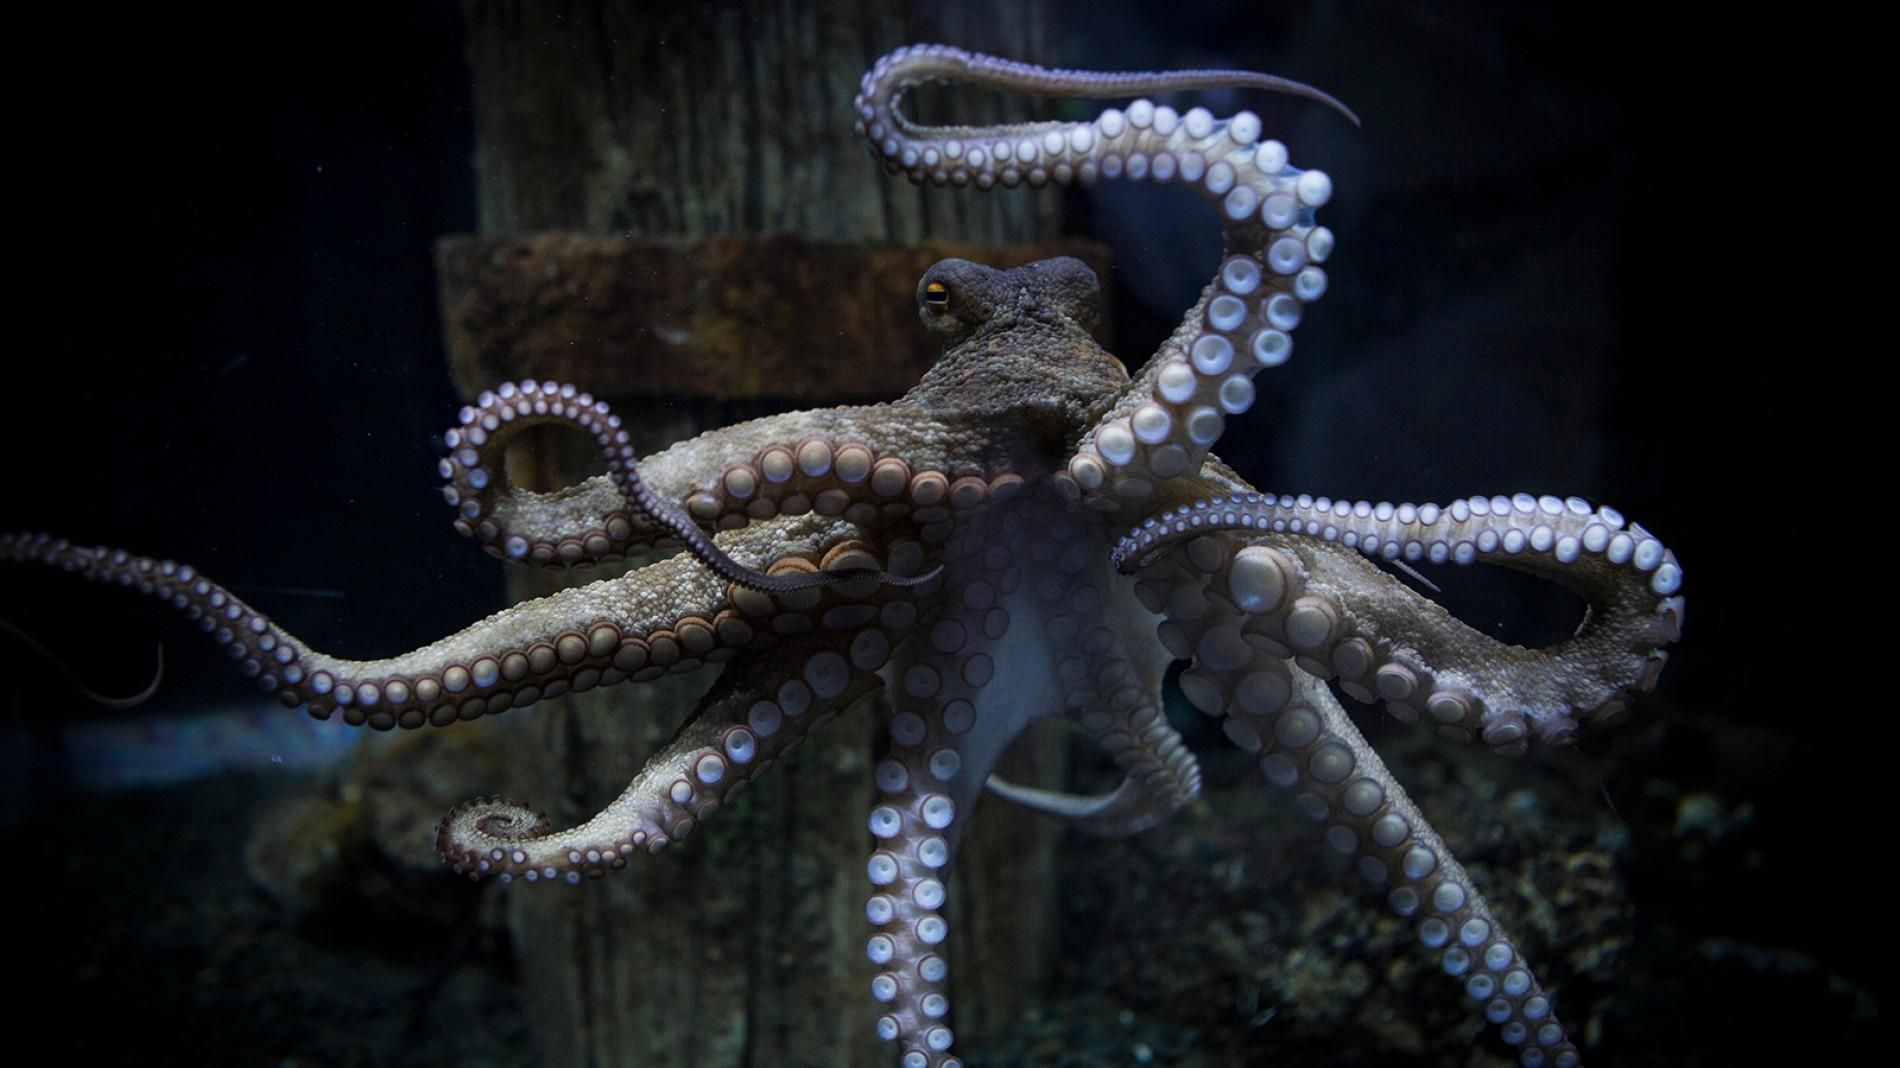 10 Interesting Octopus Facts Straight From an Octopus Himself #6 | Brain Berries